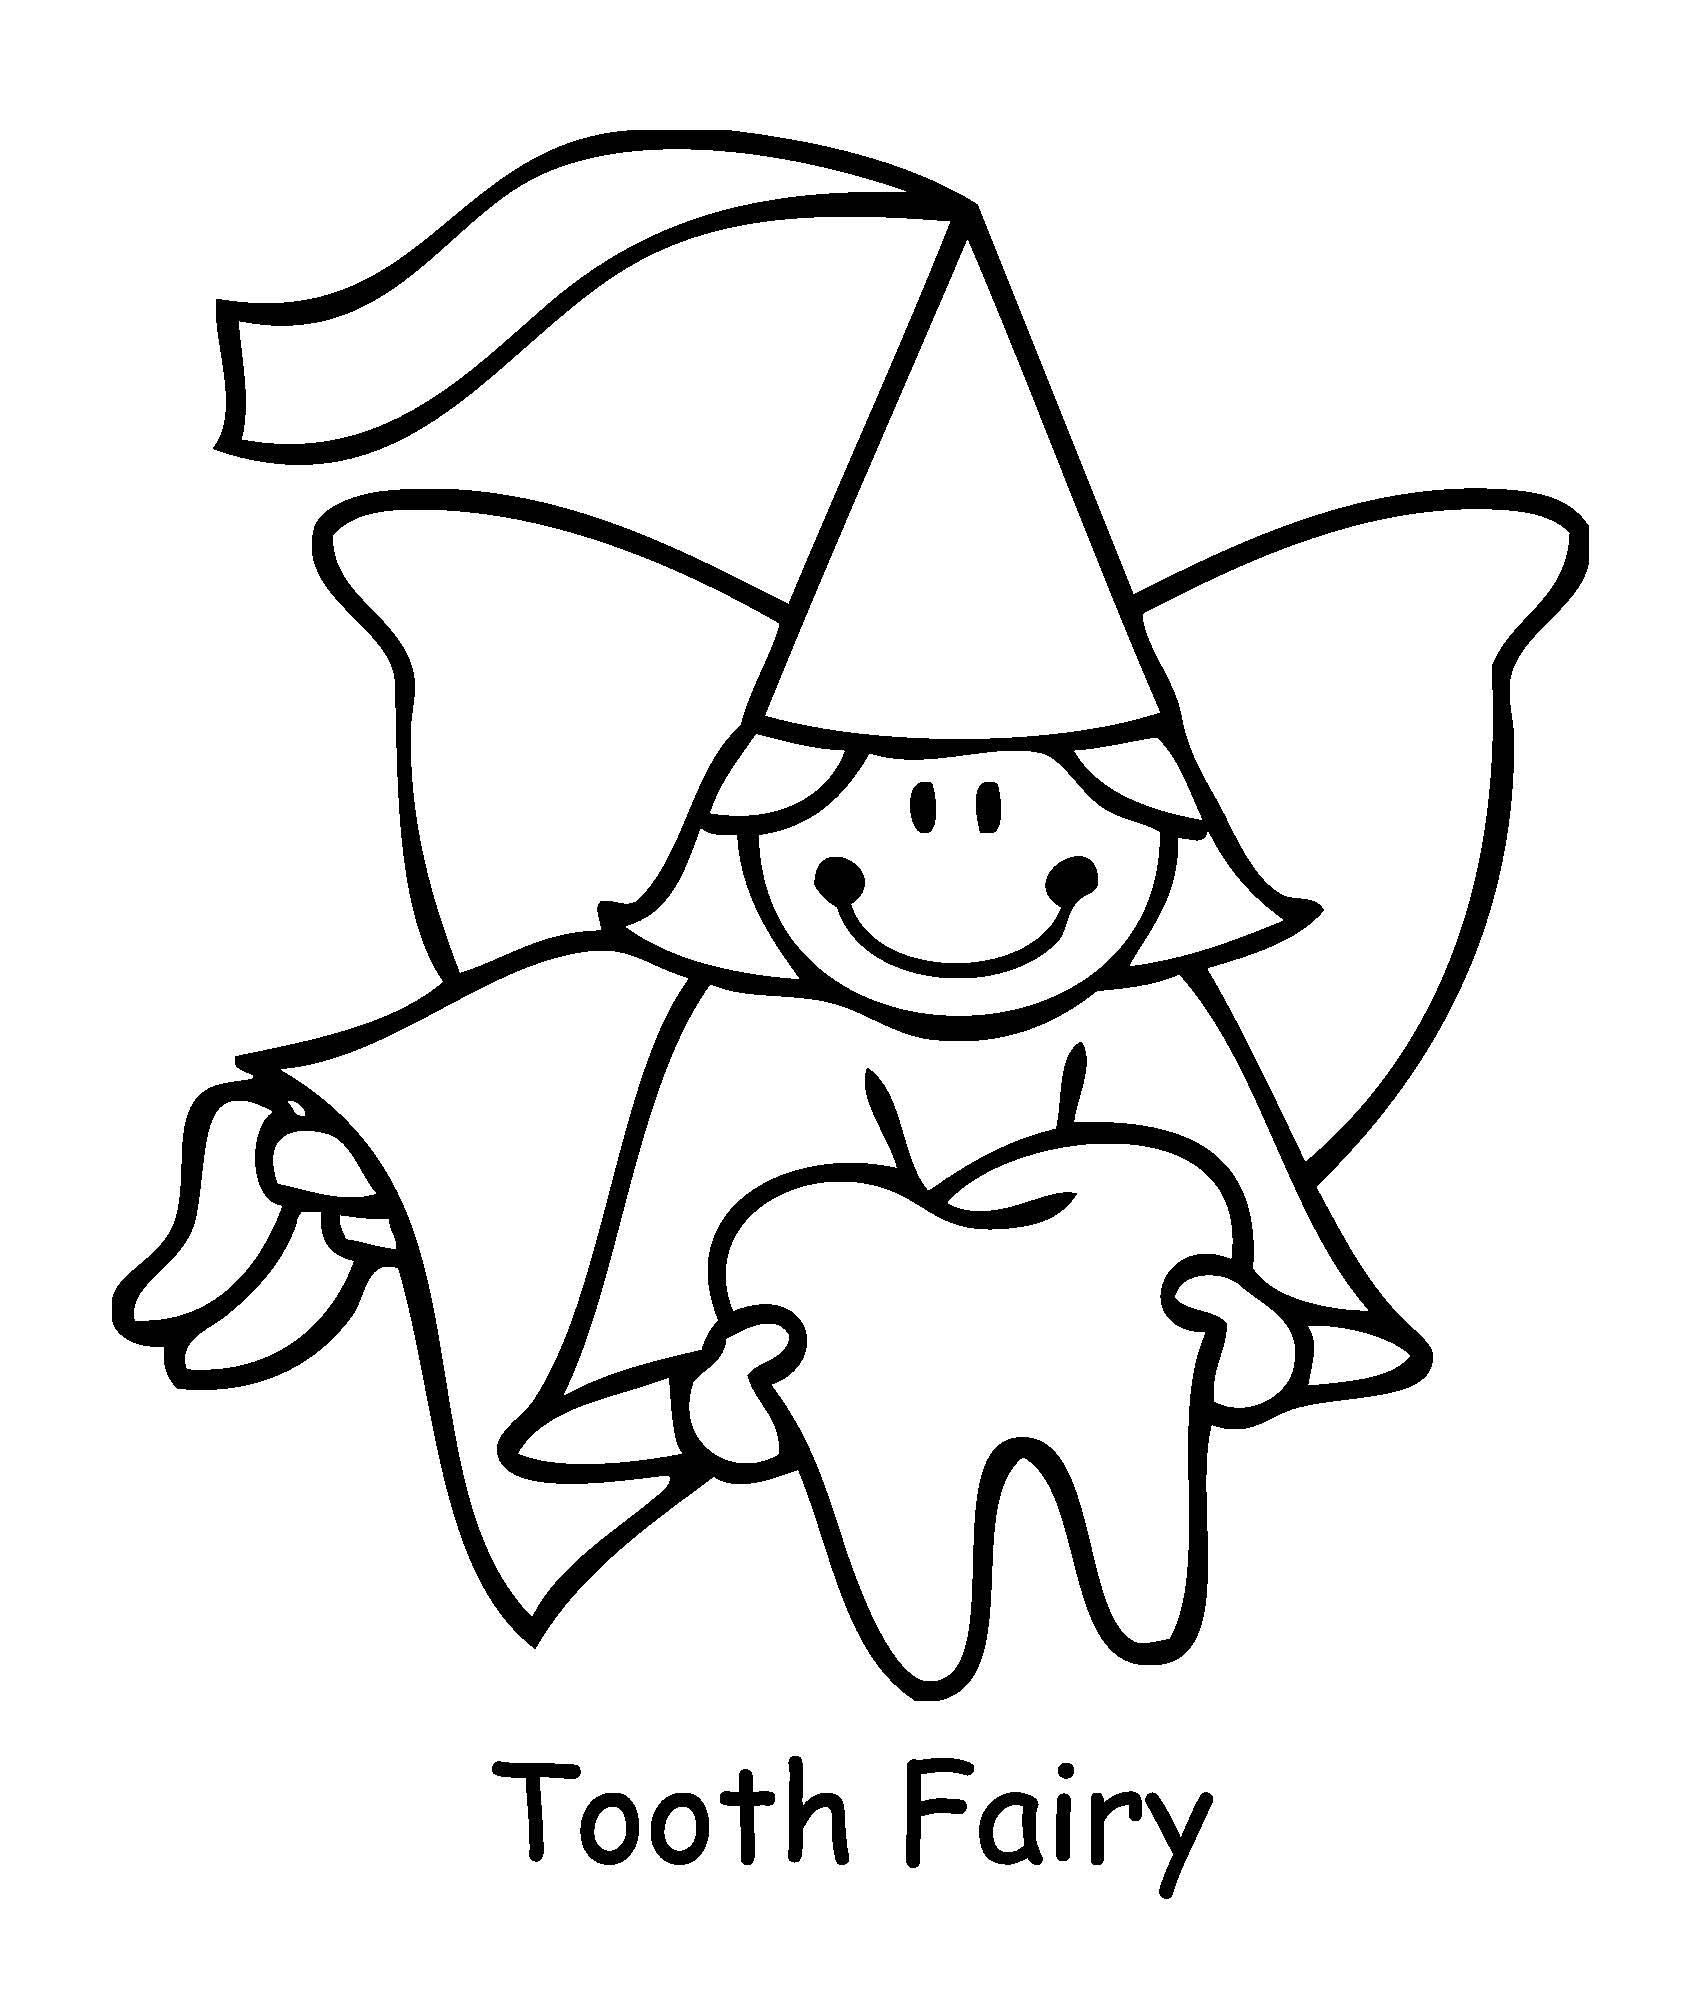 1701x2005 coloring pages for tooth fairy tooth fairy  fairy coloring